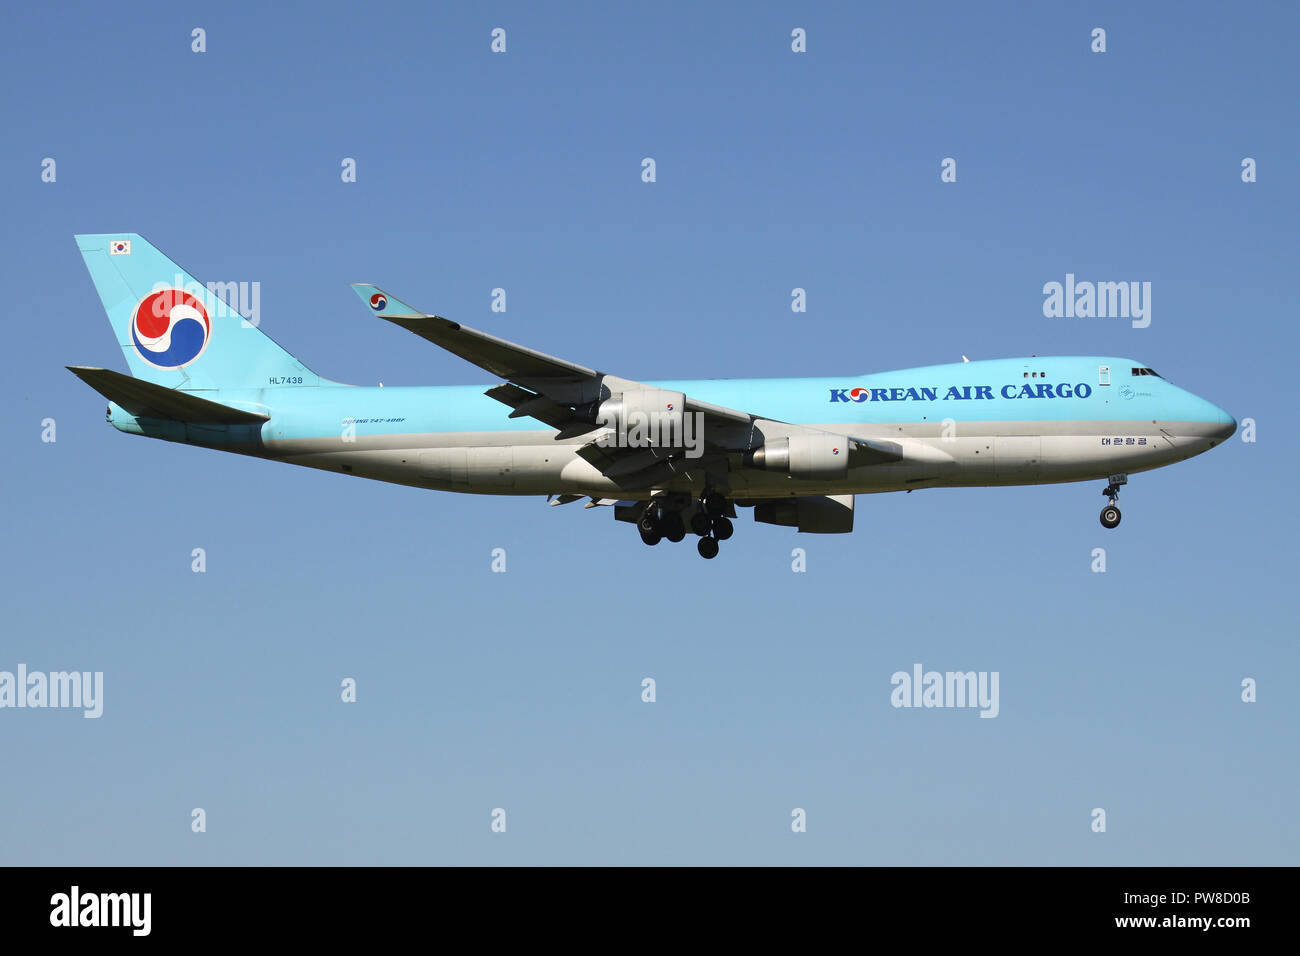 Korean Air Cargo Boeing 747-400F with registration HL7438 on short final for runway 14 of Zurich Airport. - Stock Image